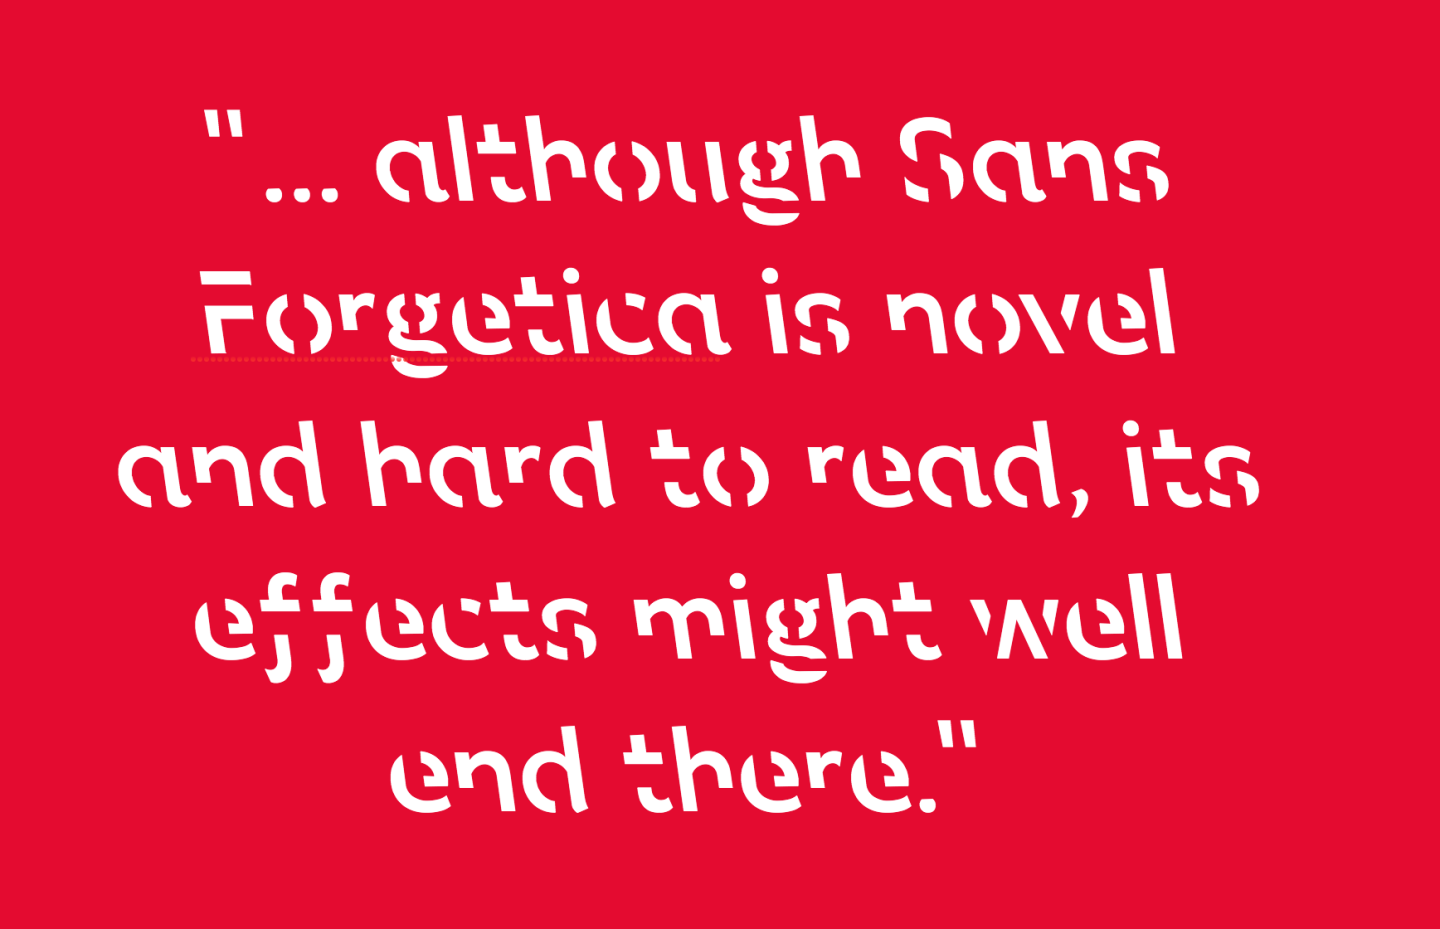 Quote in Sans Forgetica font, from Kimberley Wade, University of Warwick